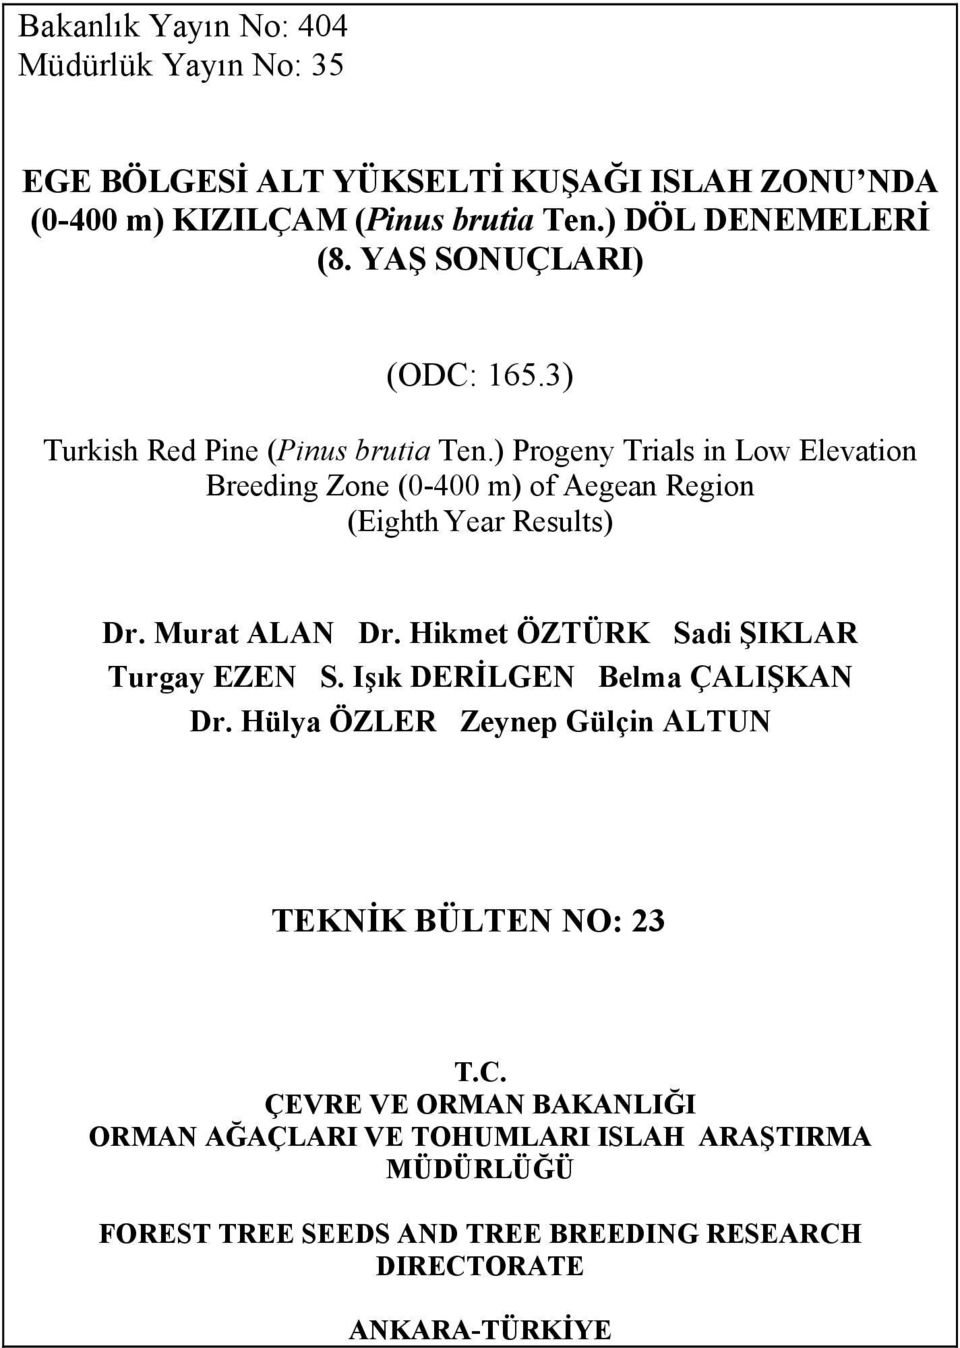 ) Progeny Trials in Low Elevation Breeding Zone (0-400 m) of Aegean Region (Eighth Year Results) Dr. Murat ALAN Dr.